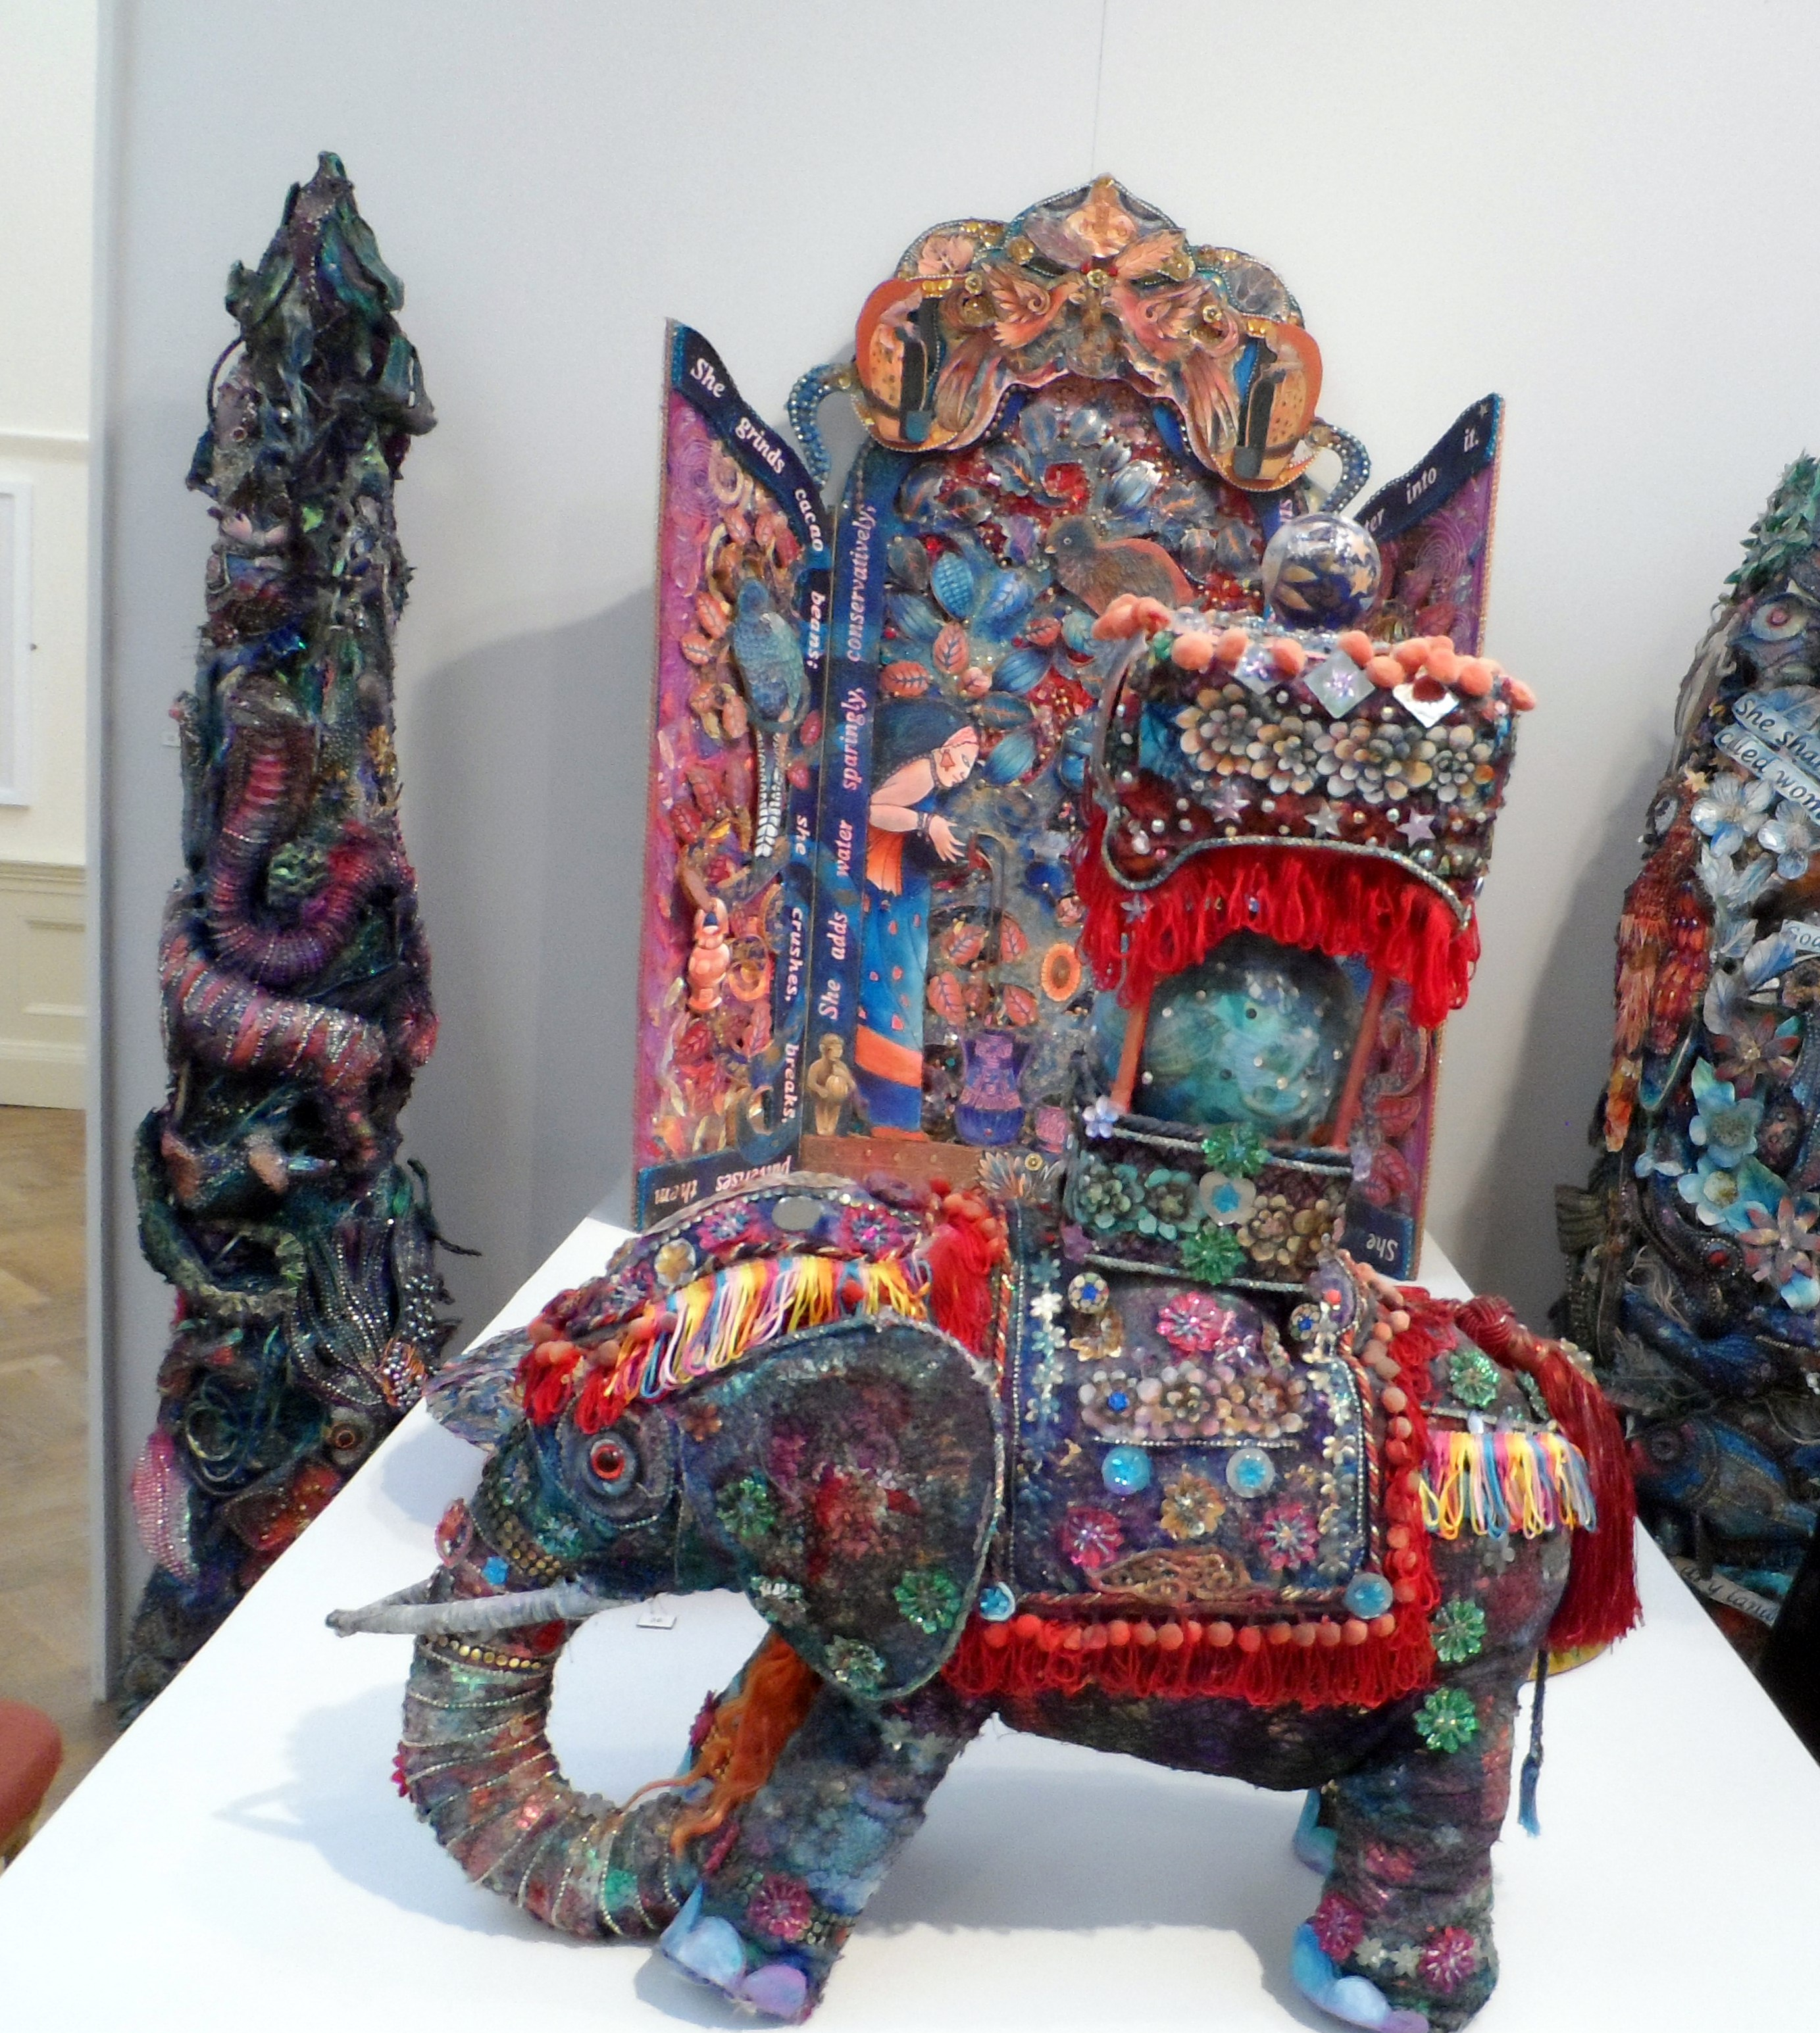 INDIAN ELEPHANT by Nikki Parmenter, Williamson Gallery, 2019